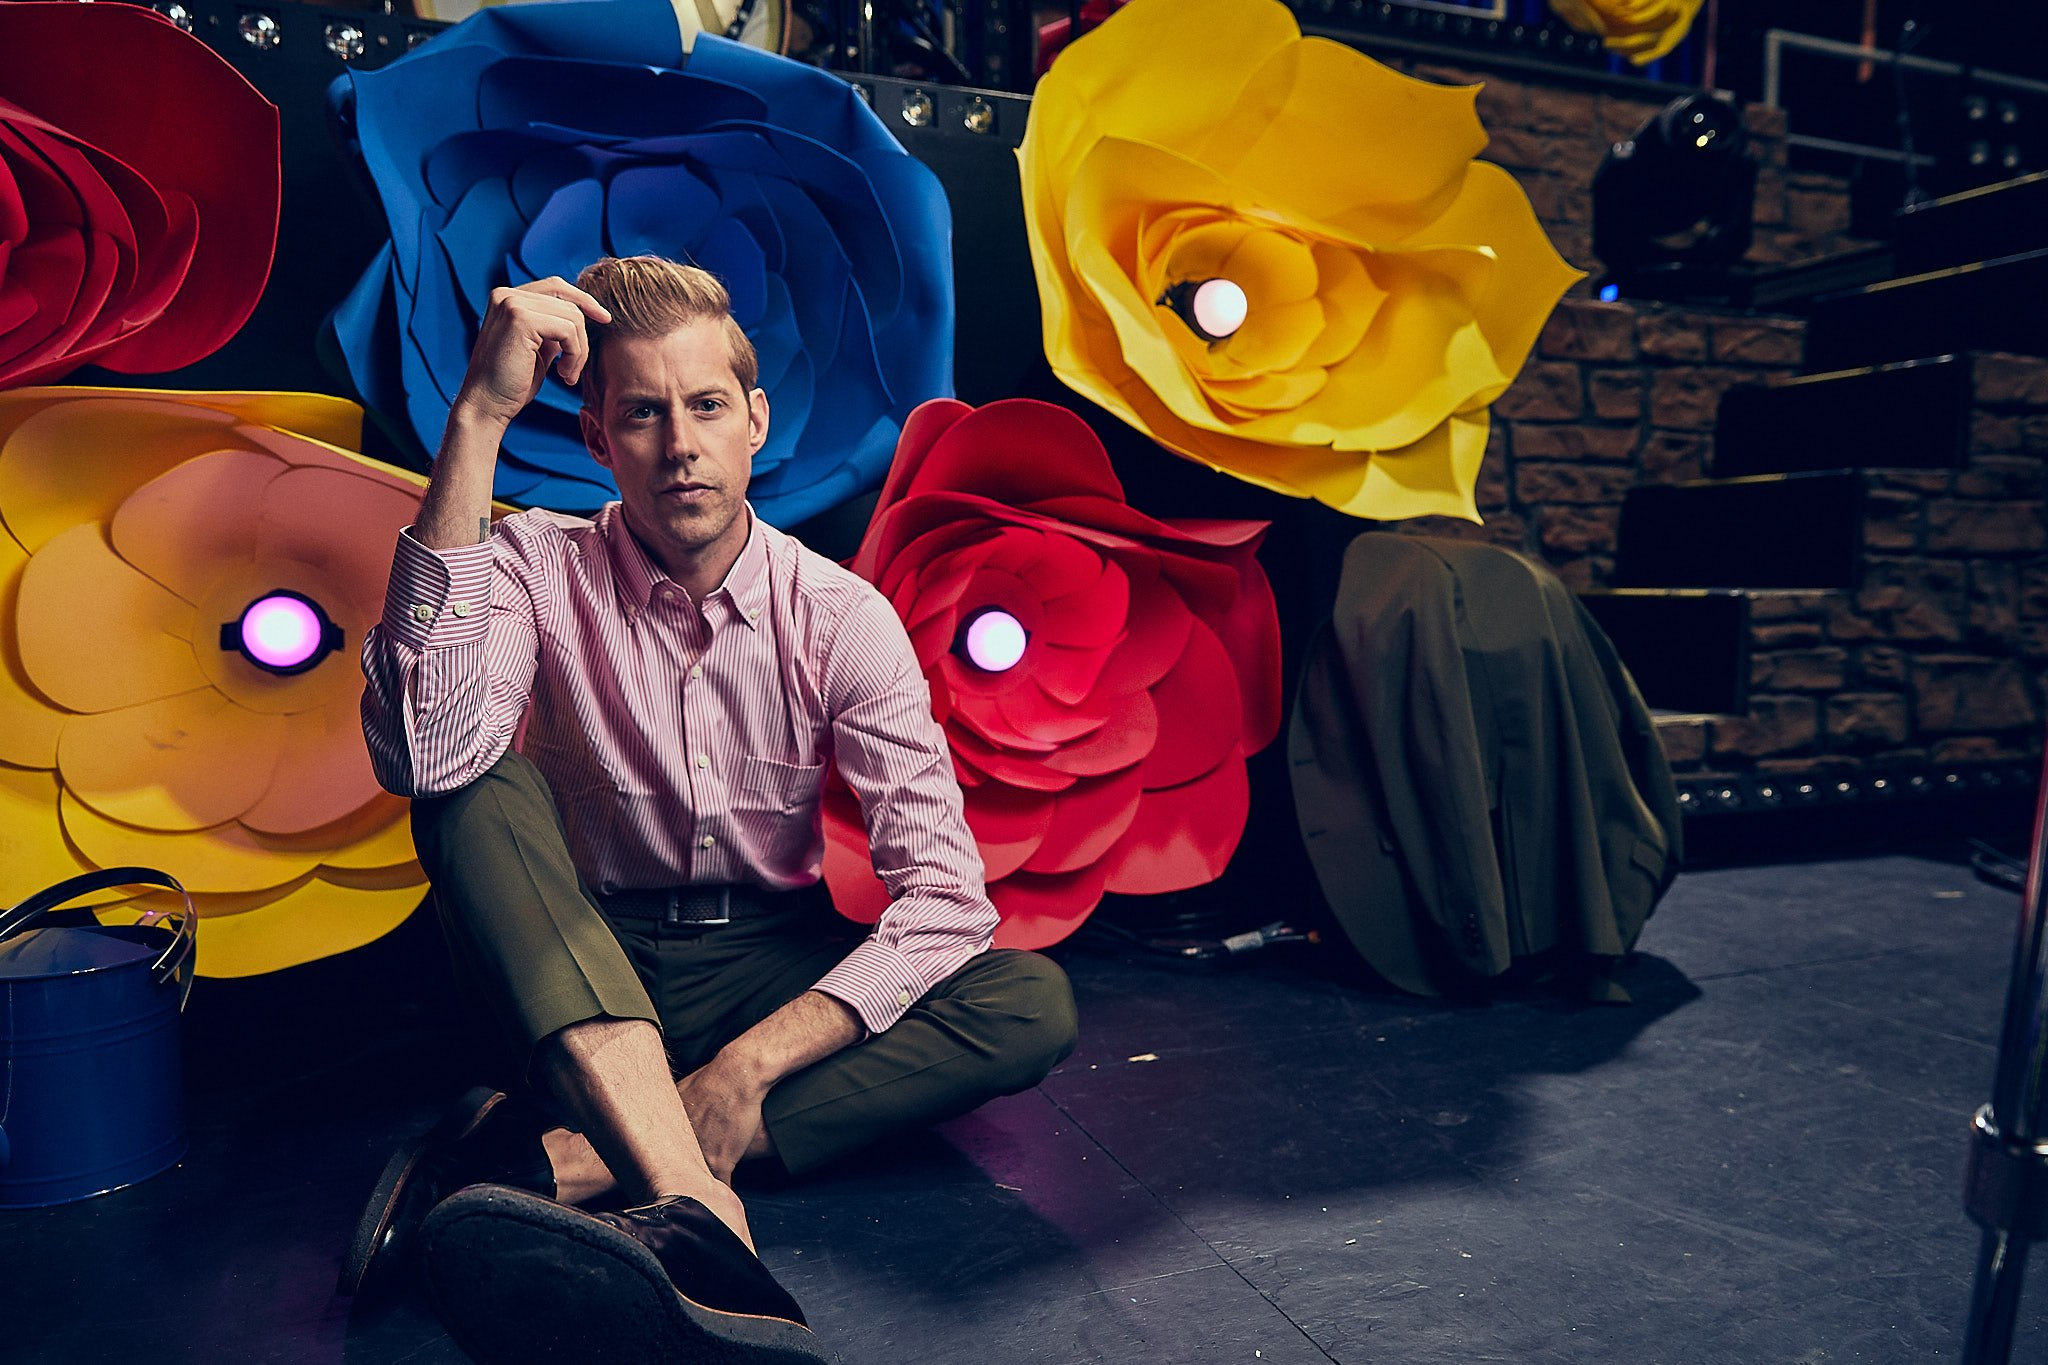 About the band - Andrew McMahon in the Wilderness